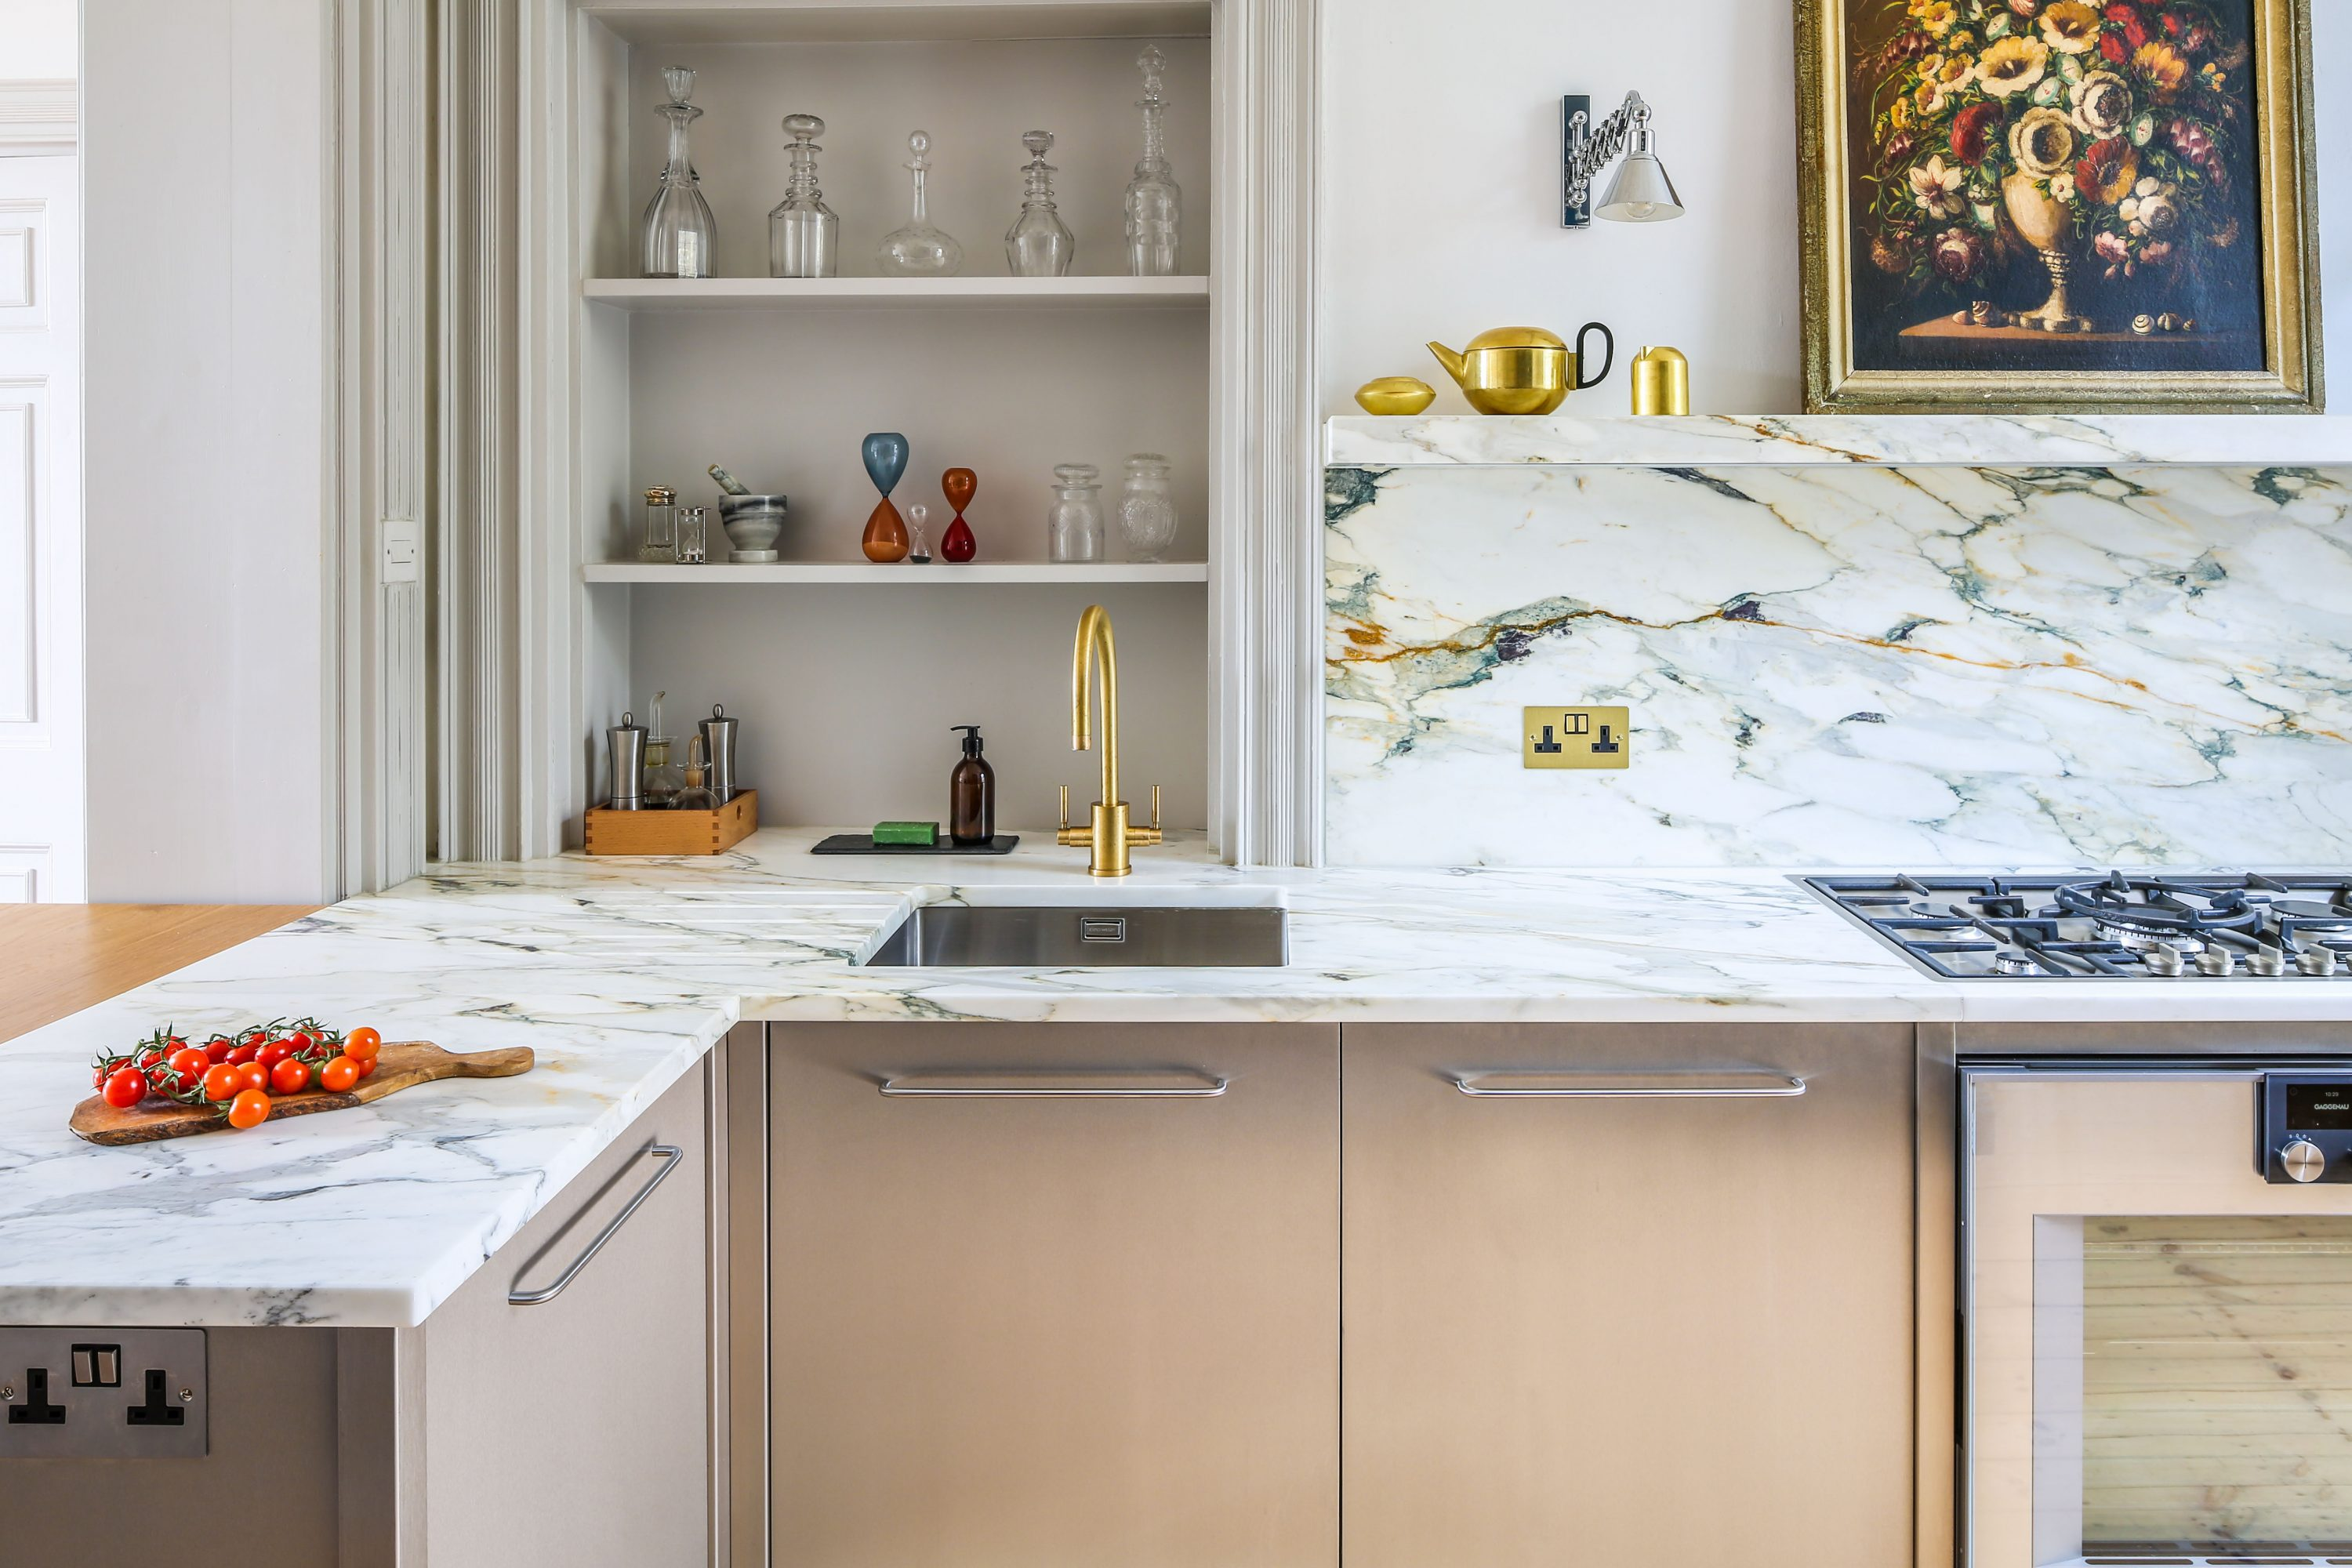 View of kitchen cabinet wrapped in Stainless Steel with a marble worktop